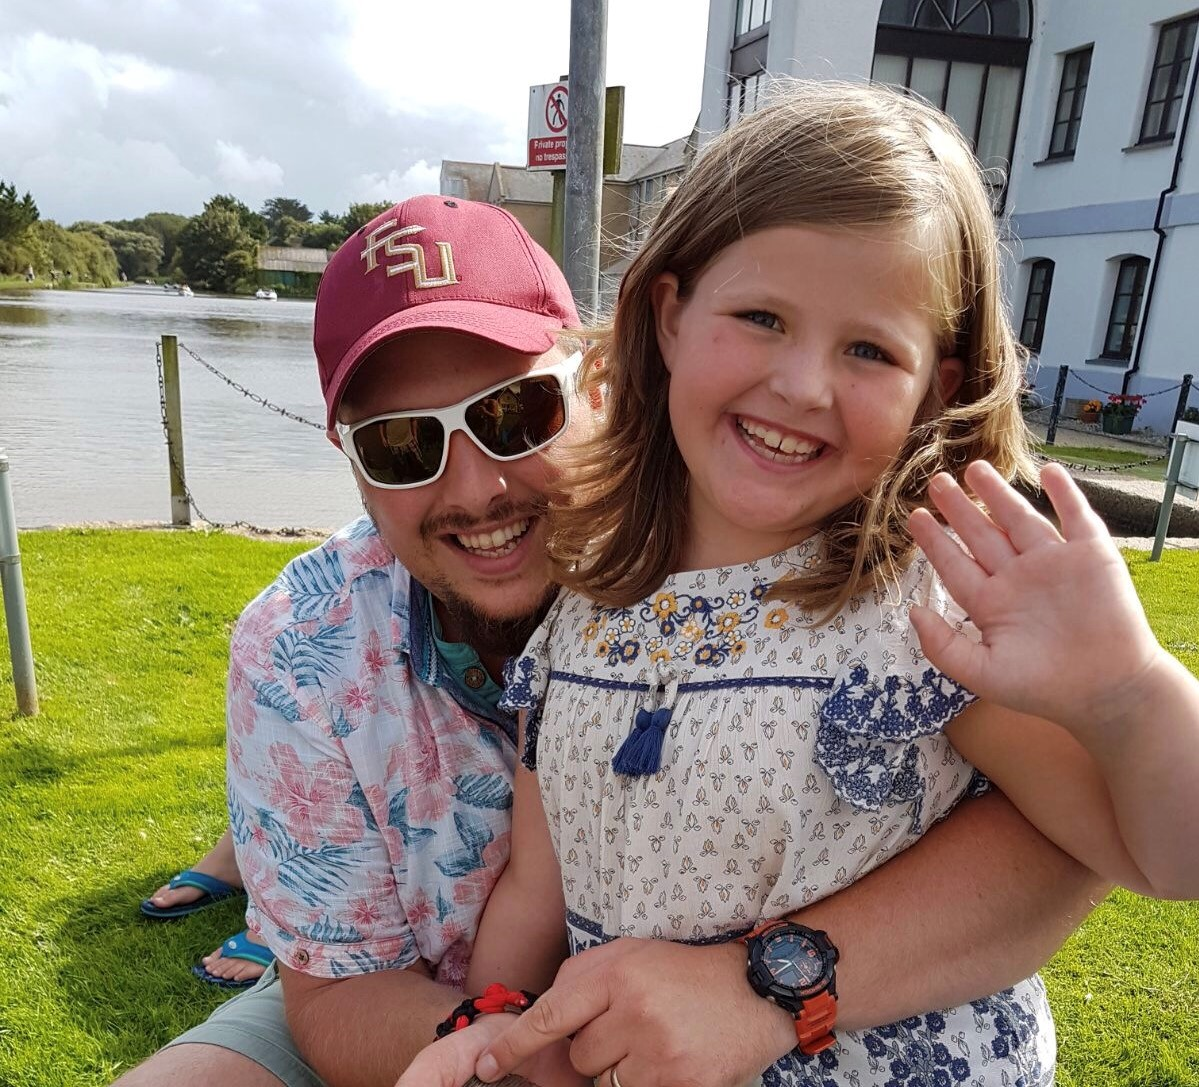 Crewkerne man, Scott Walker, completes golfing marathon inspired by his daughter Eliza's cancer battle